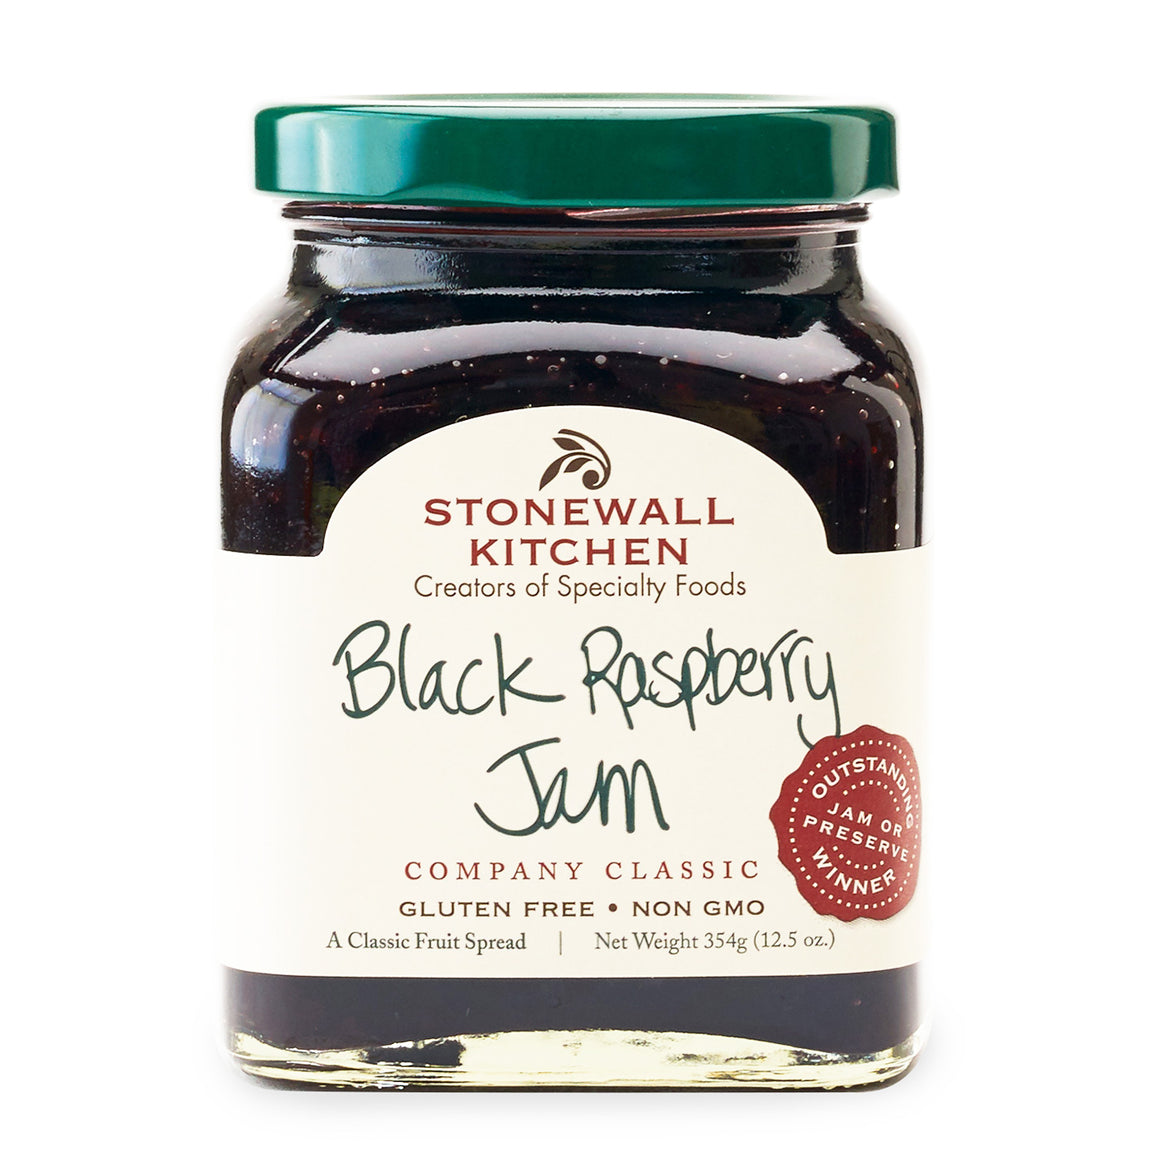 Black Raspberry Jam by Stonewall Kitchen